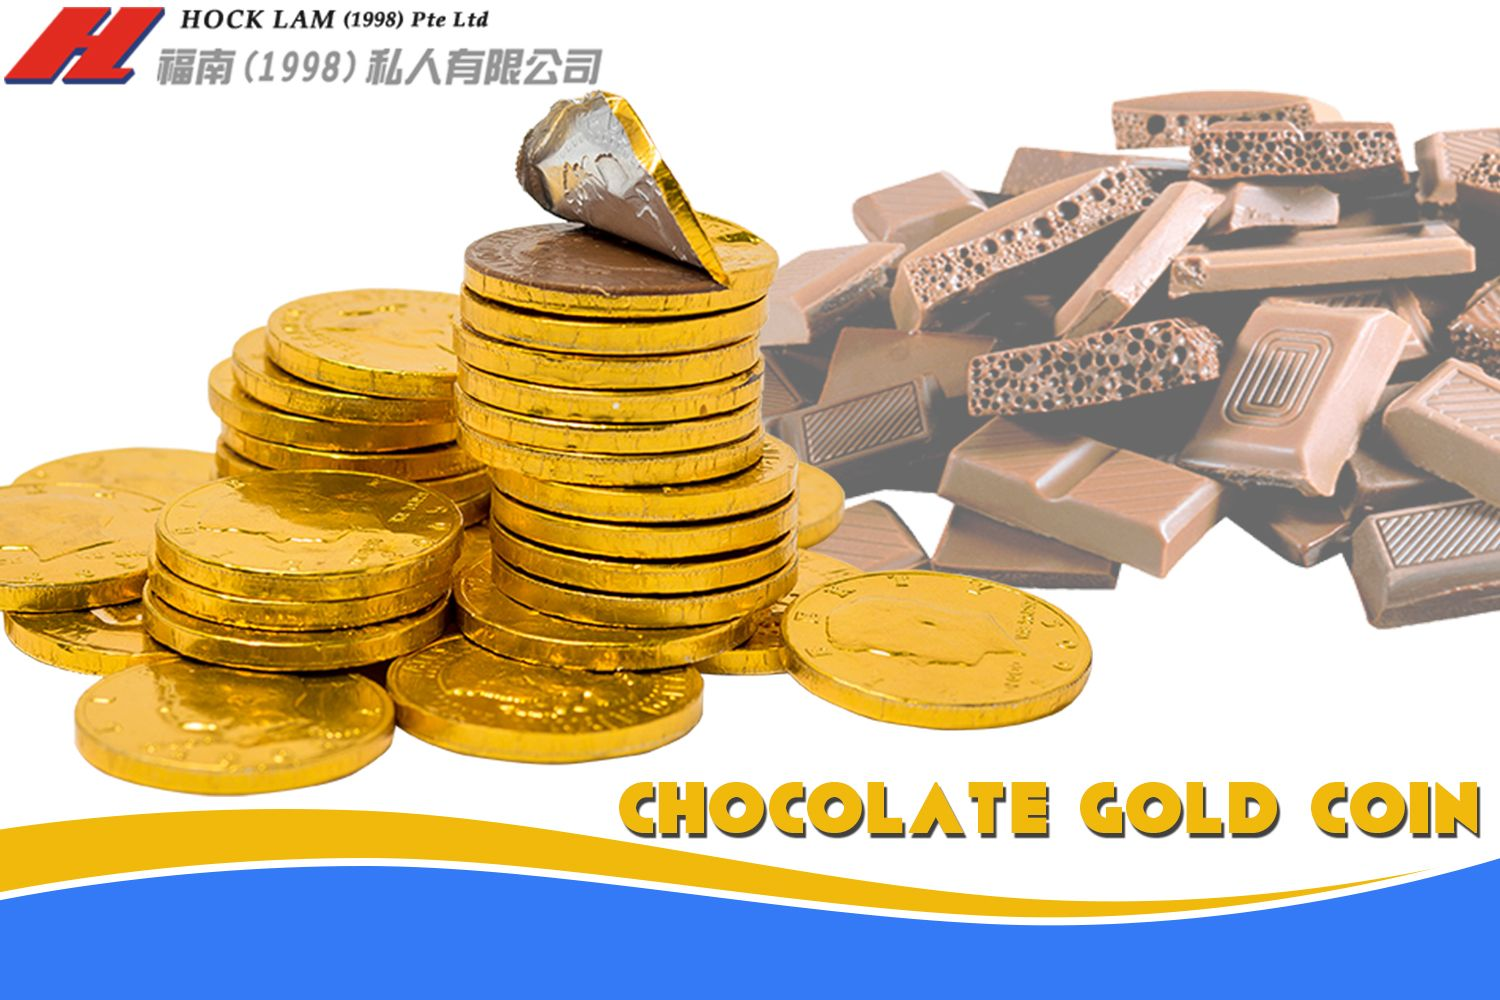 Grab Tasty And Chocolaty Gold Coins From Hocklam Have A